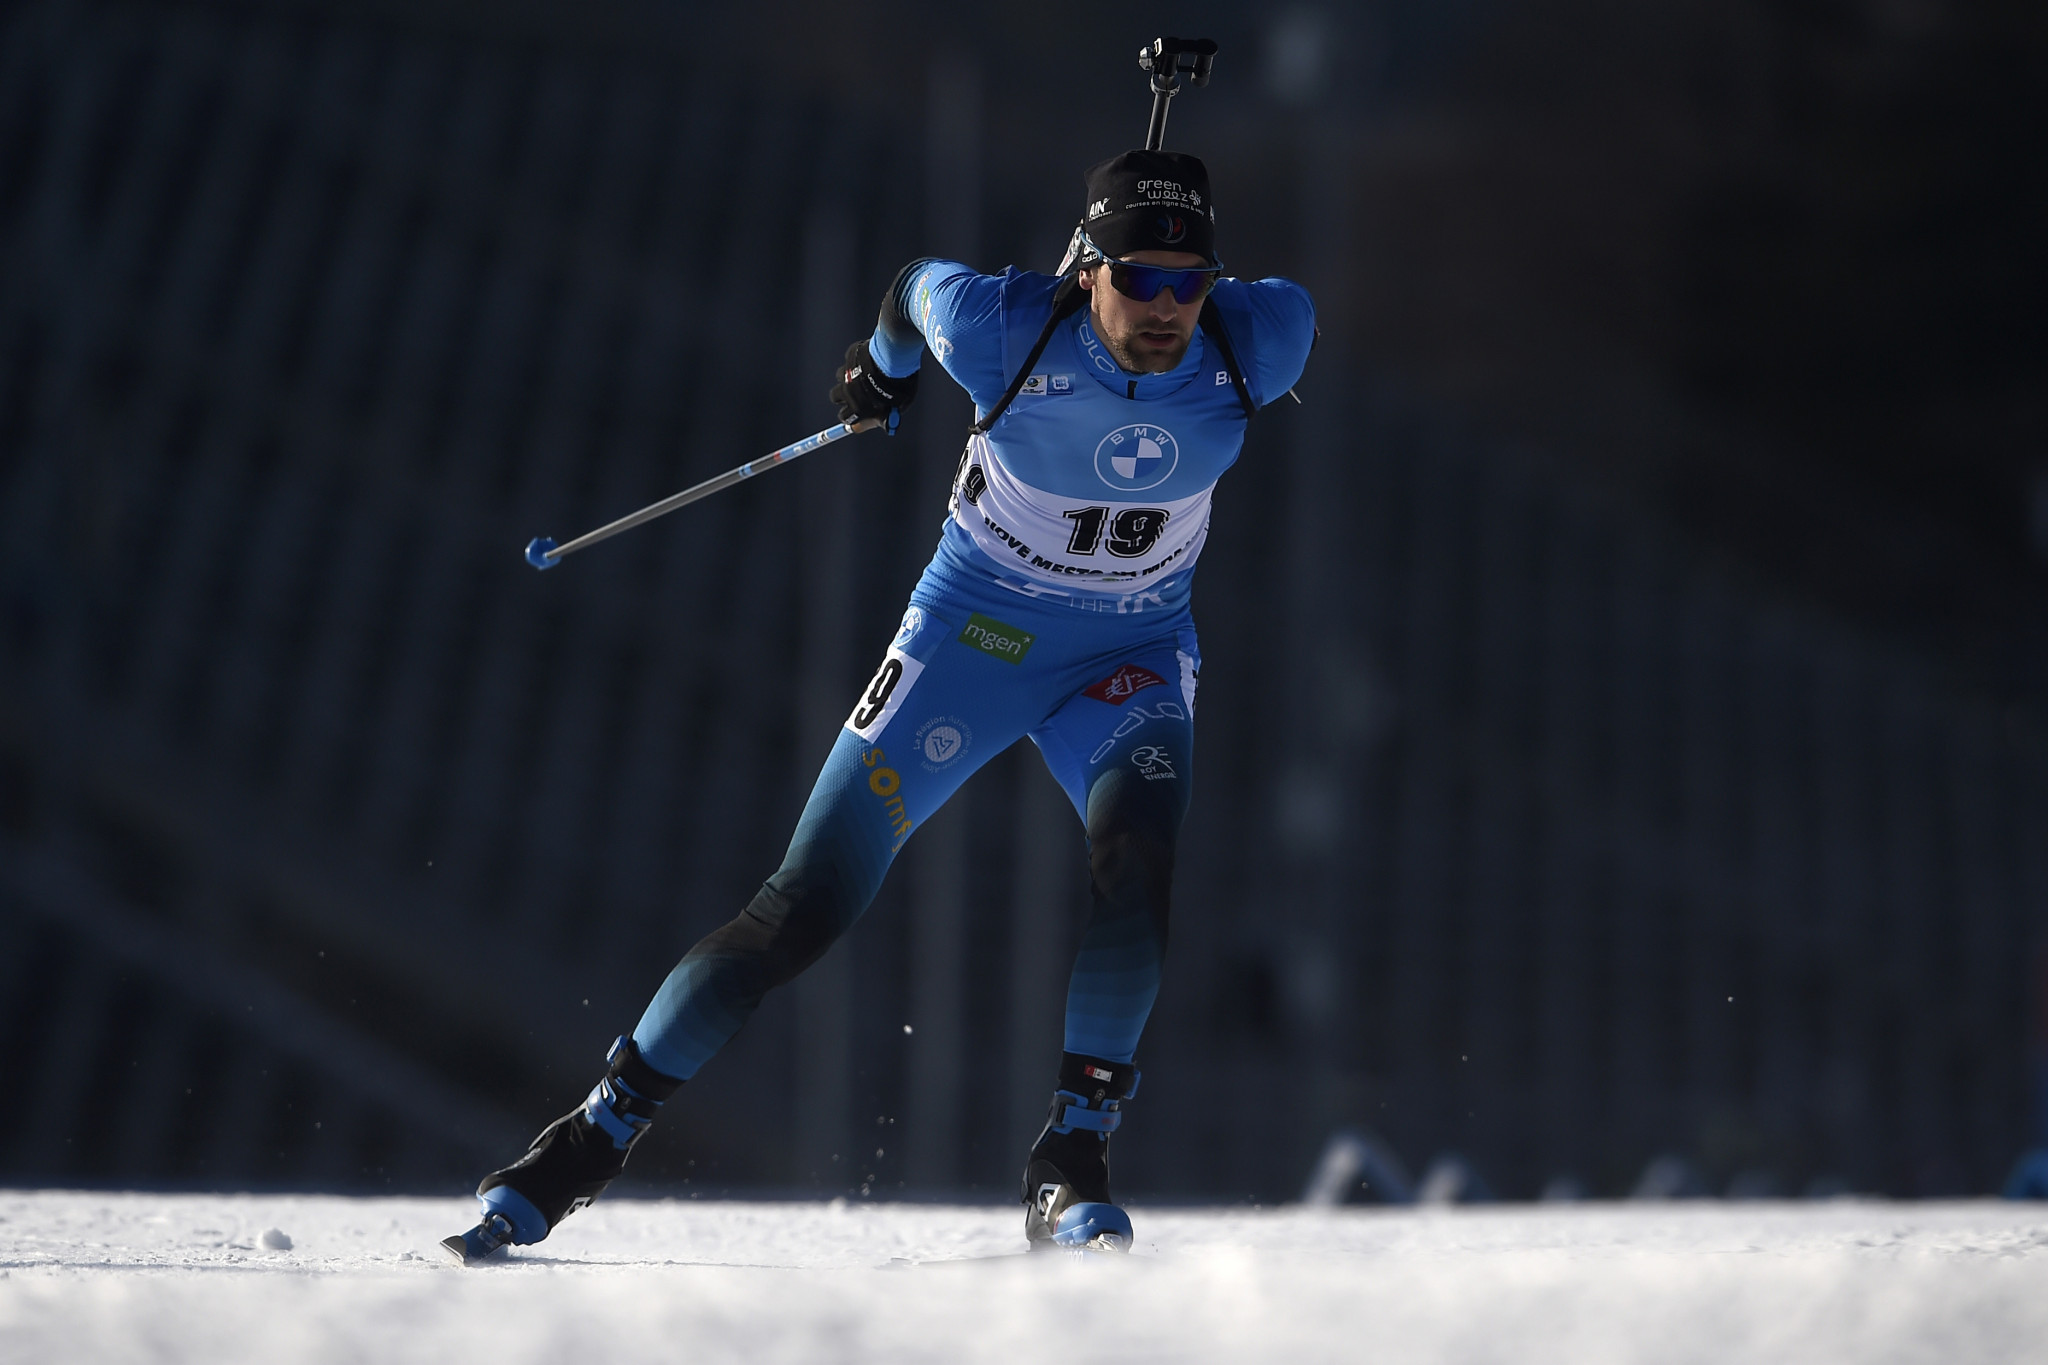 Simon Desthieux earned his first IBU World Cup win in Nové Město na Moravě ©Getty Images